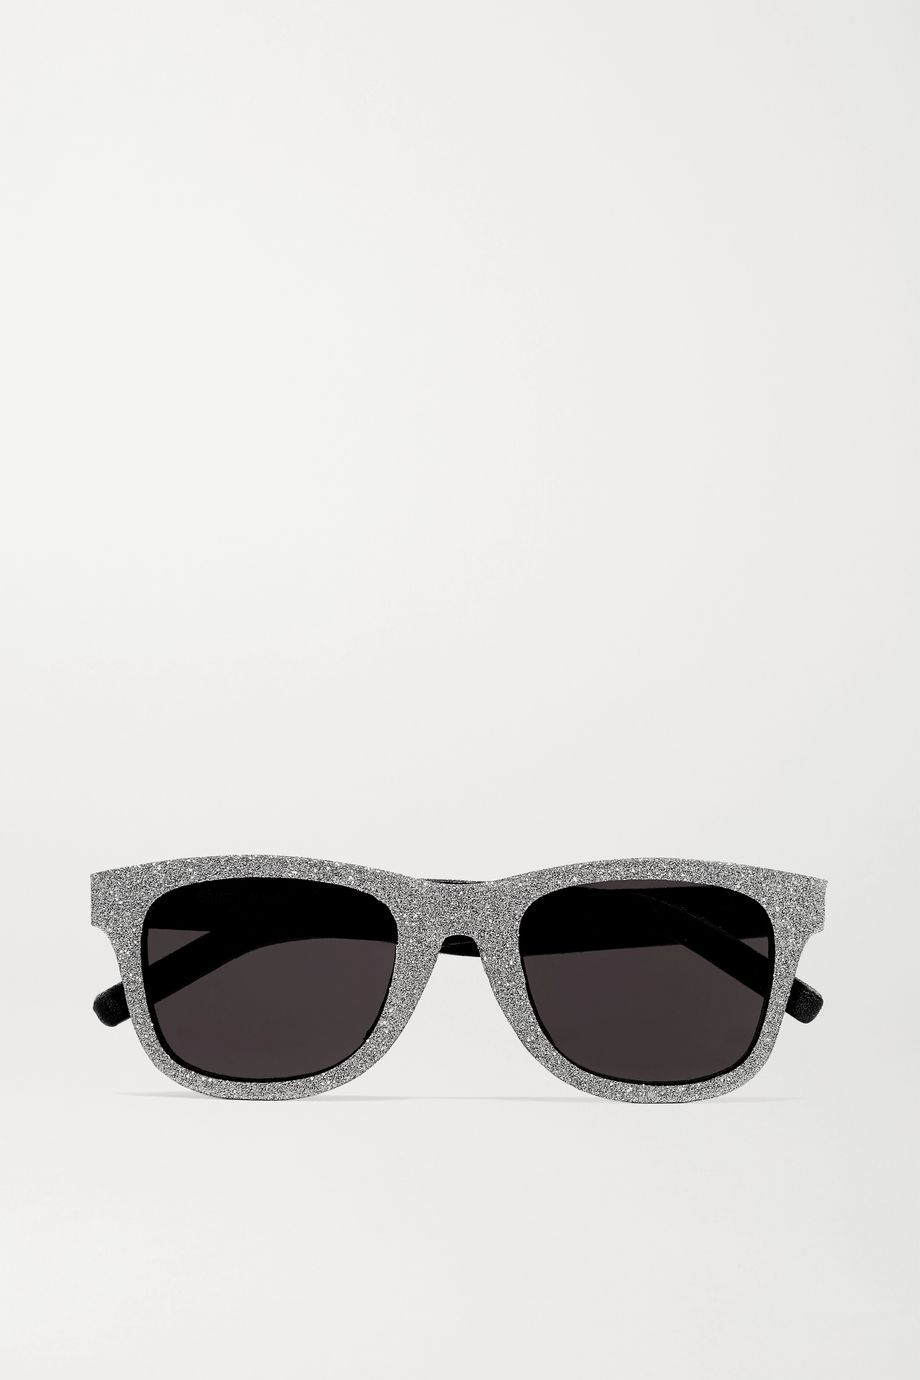 SAINT LAURENT Square-frame glittered acetate and leather sunglasses